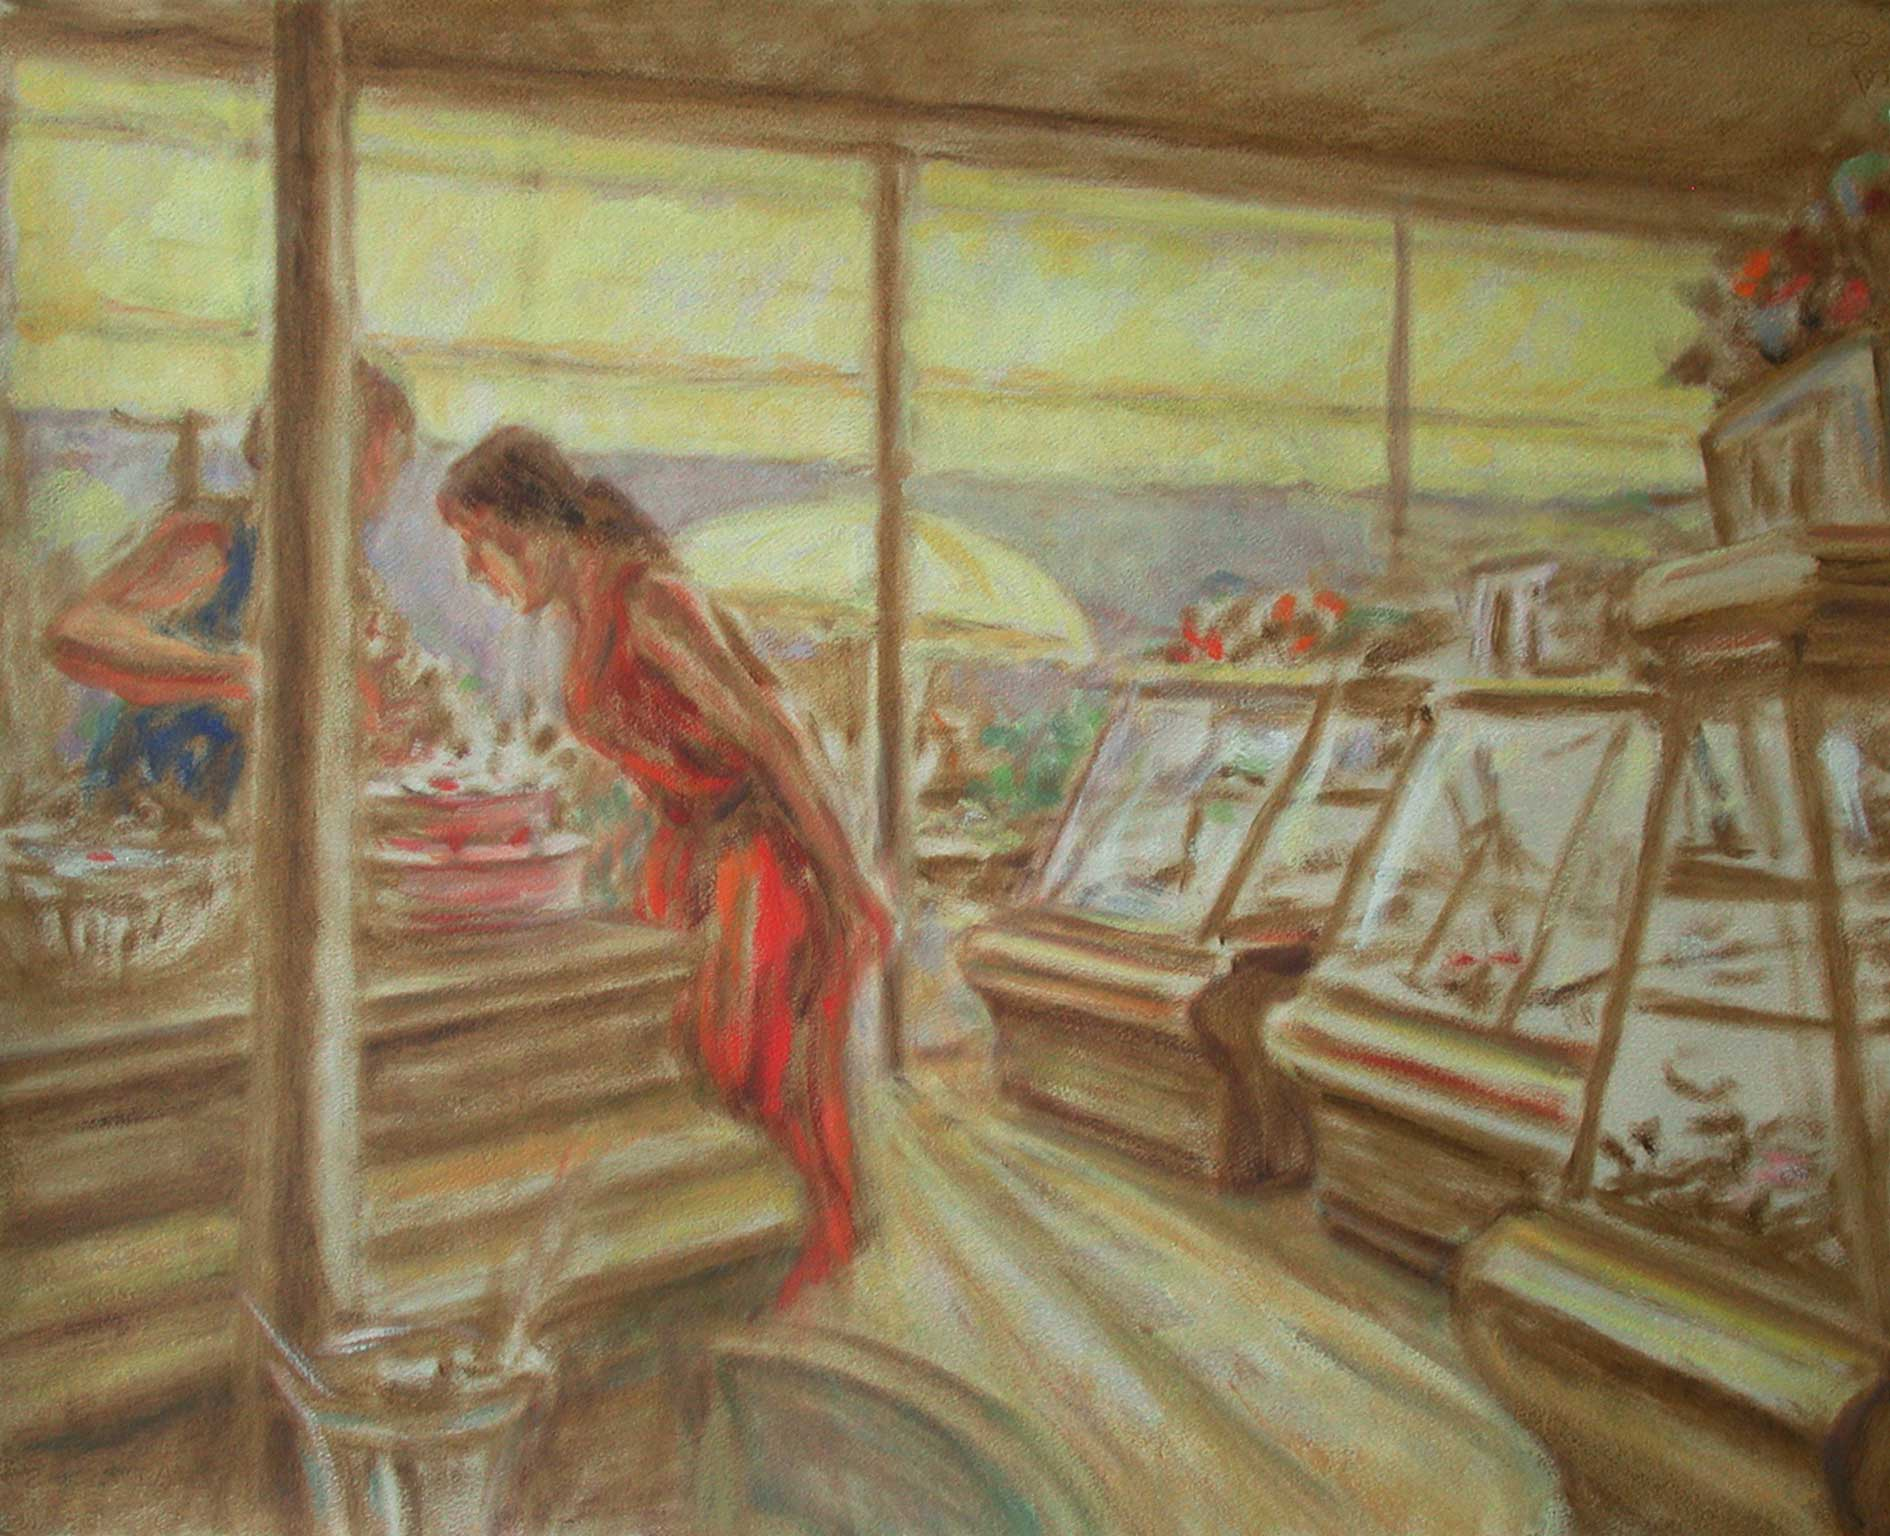 'The pastry shop, quick oil sketch 70 x 55 cm